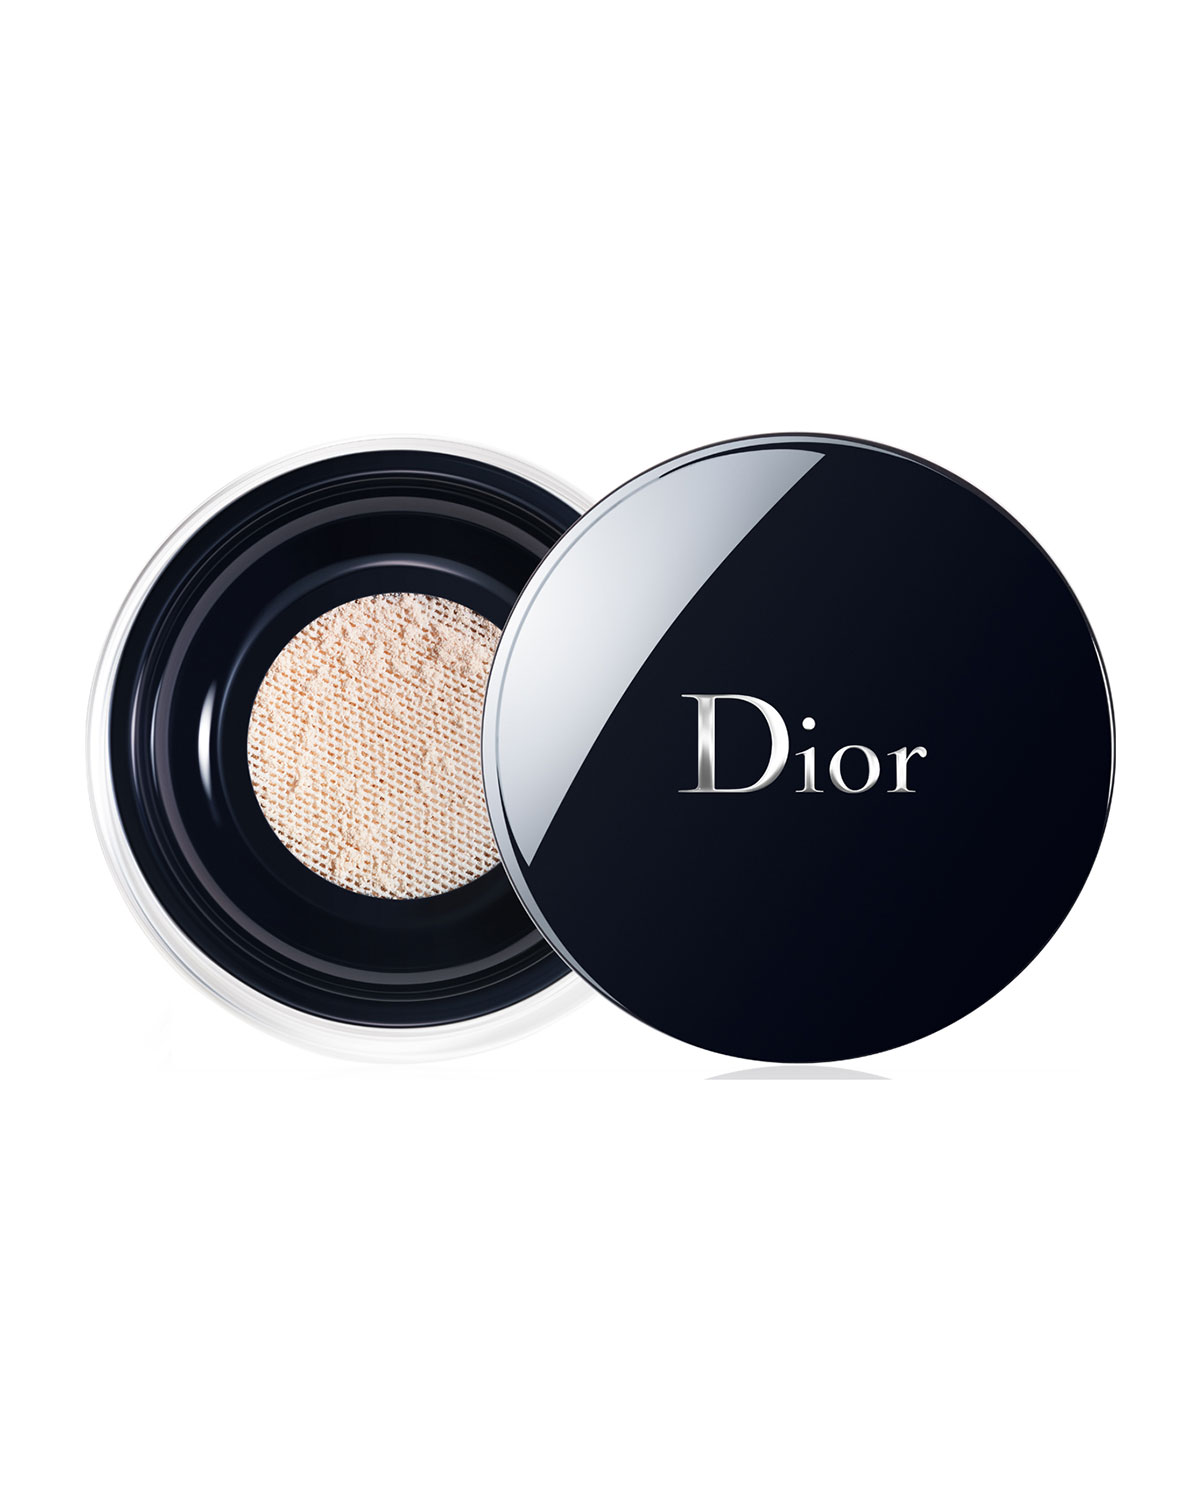 Dior Beauty Diorskin Forever & Ever Control Loose Powder